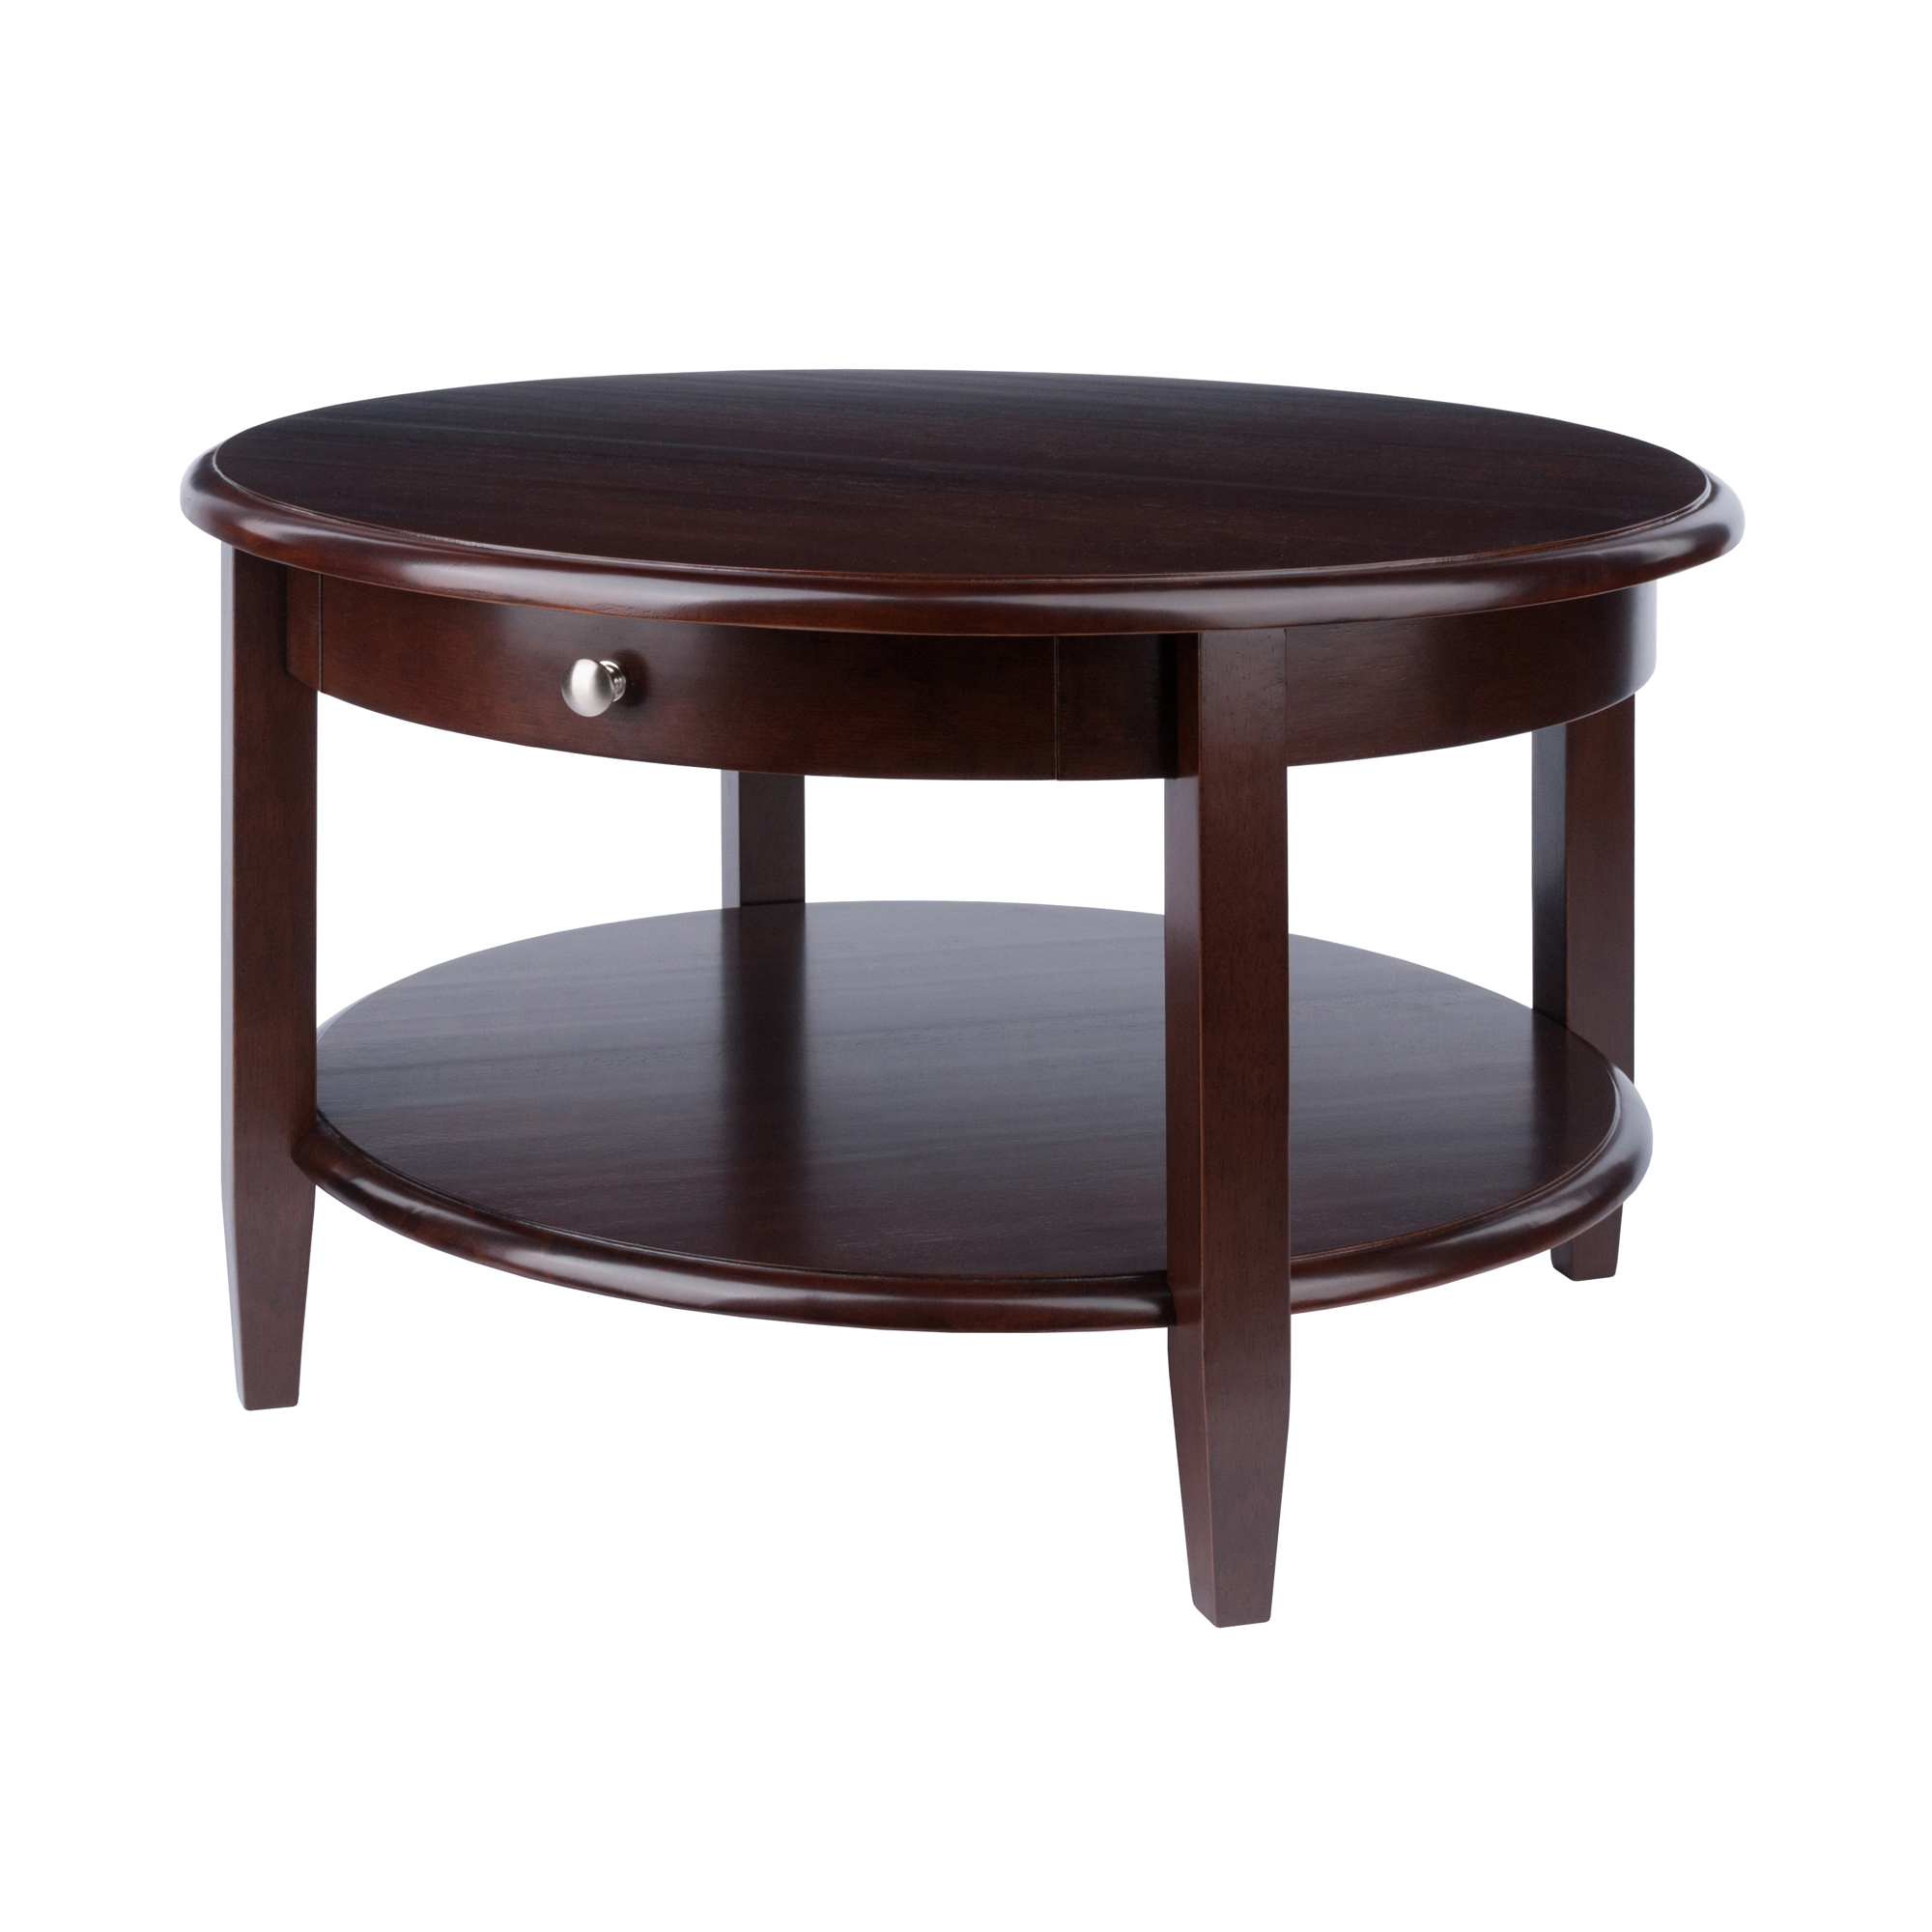 Master What to put on a round coffee table